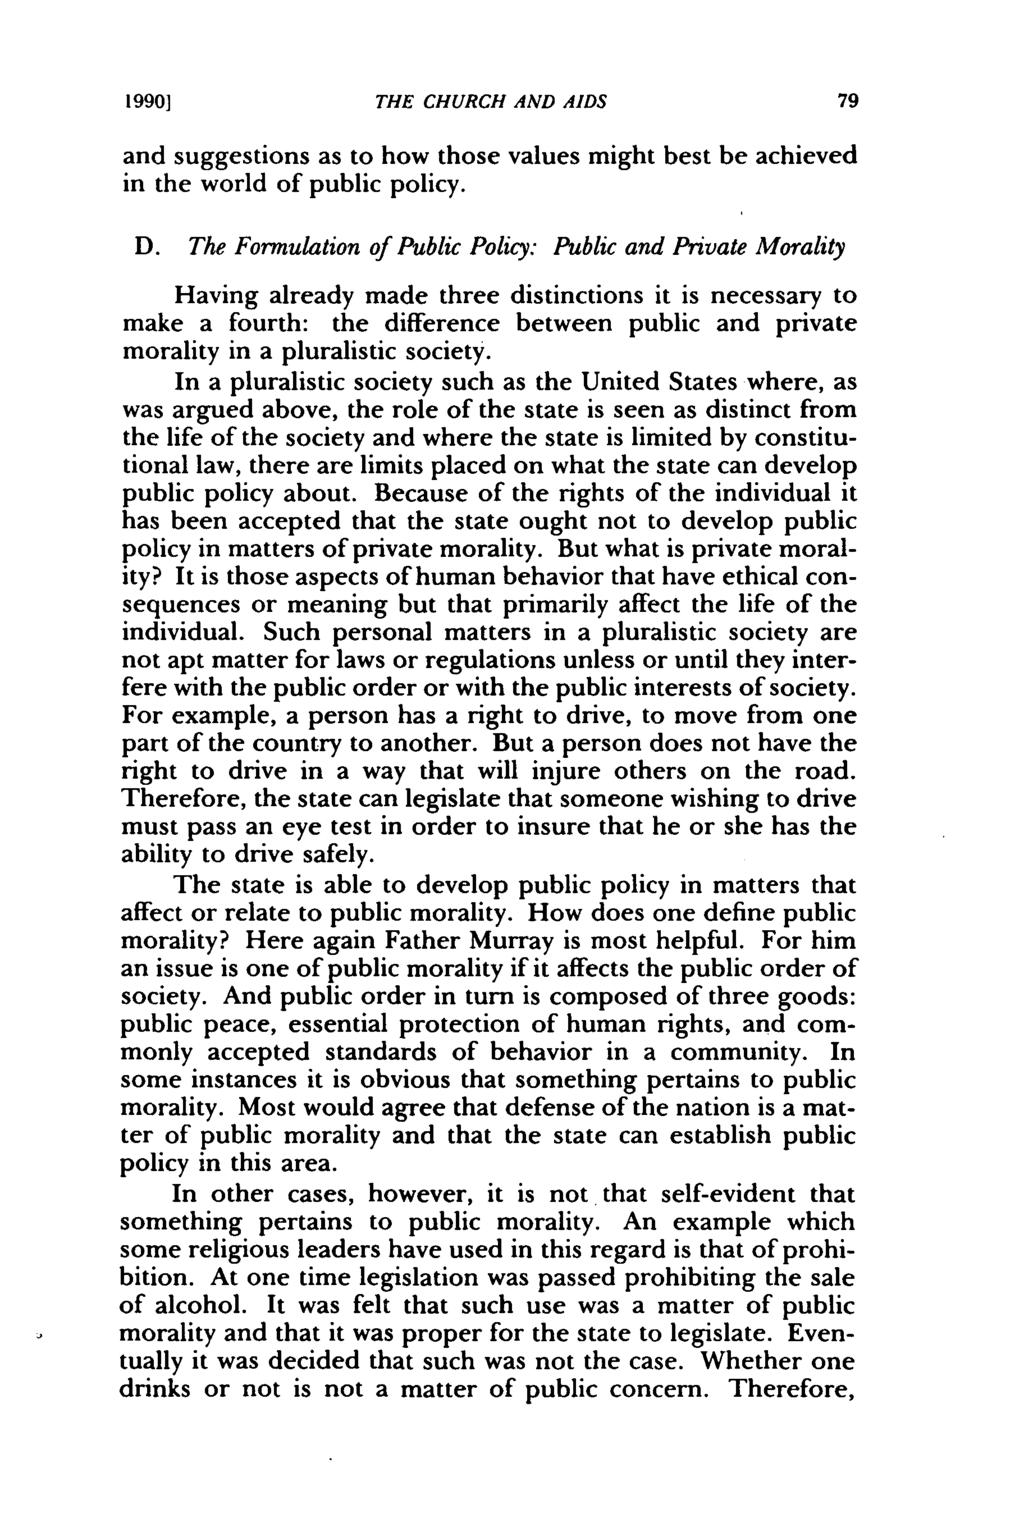 1990] THE CHURCH AND AIDS and suggestions as to how those values might best be achieved in the world of public policy. D.